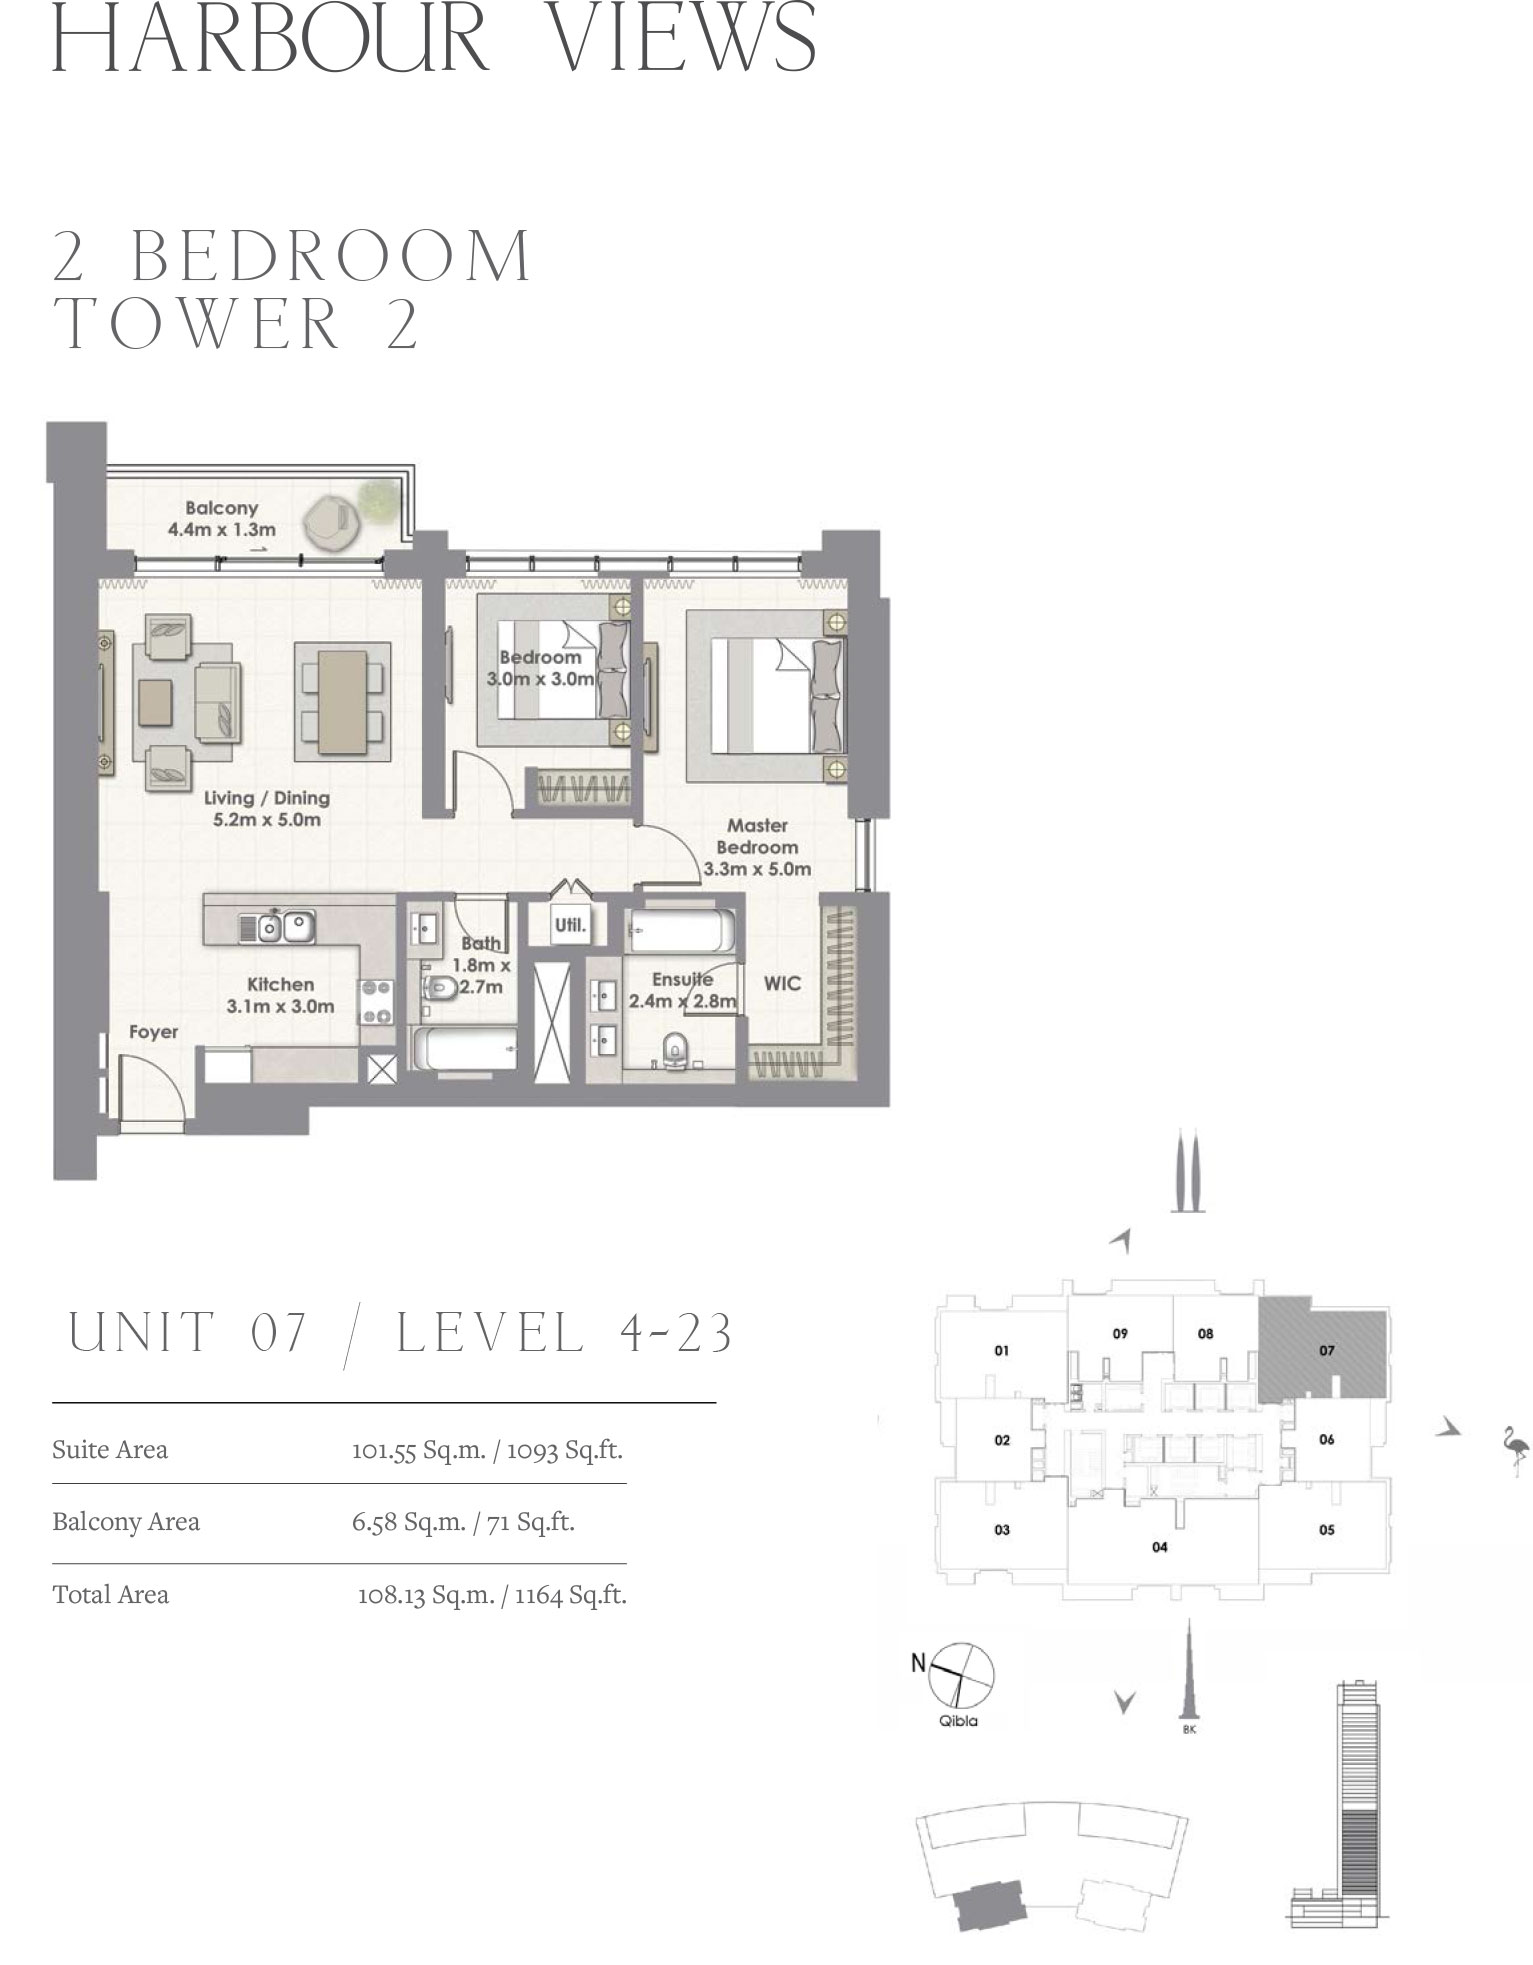 2 Bedroom Tower 2, Unit 07/Level 4-23